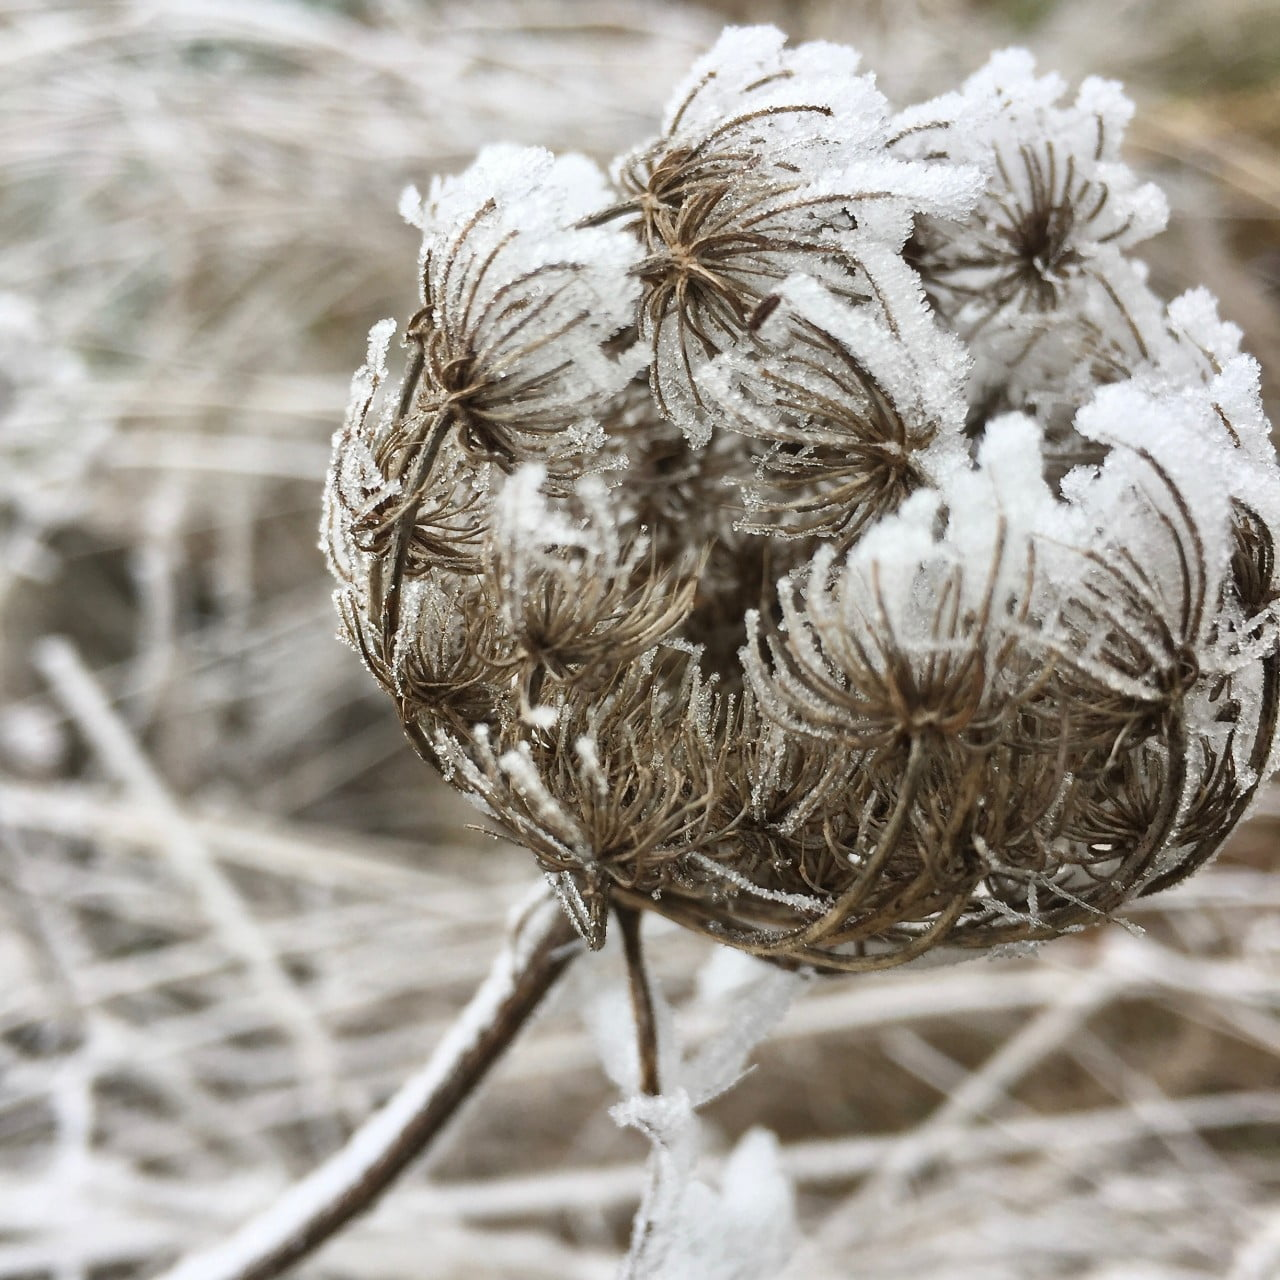 I took this photo of a weed seed head in France in January. A beautiful frosty seedhead.